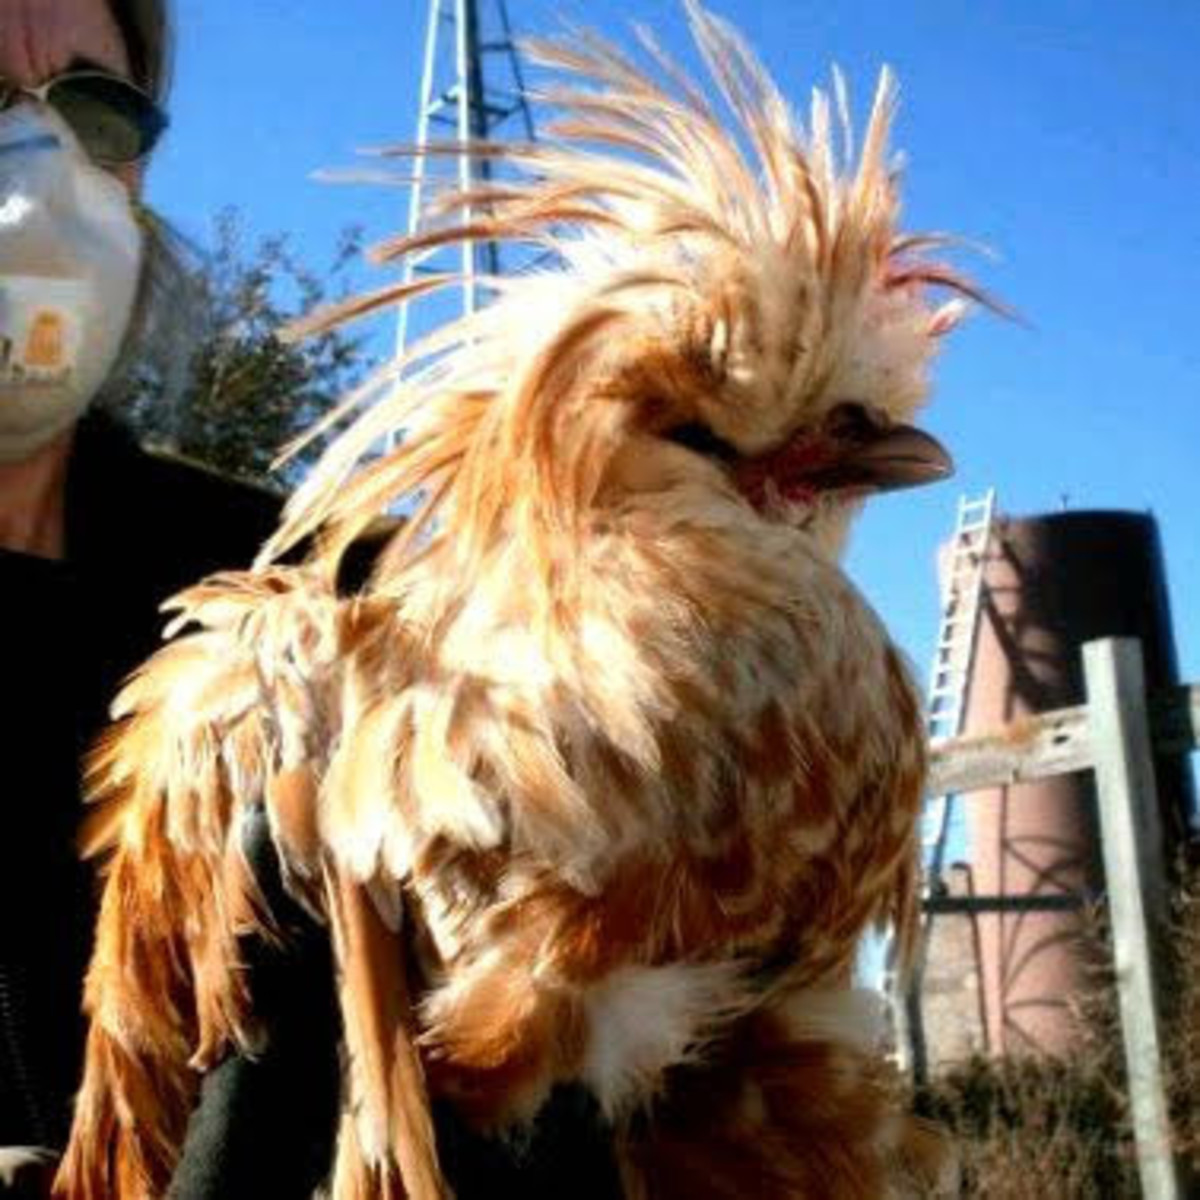 The Buff Laced Polish Rooster--Personality and Well-Being